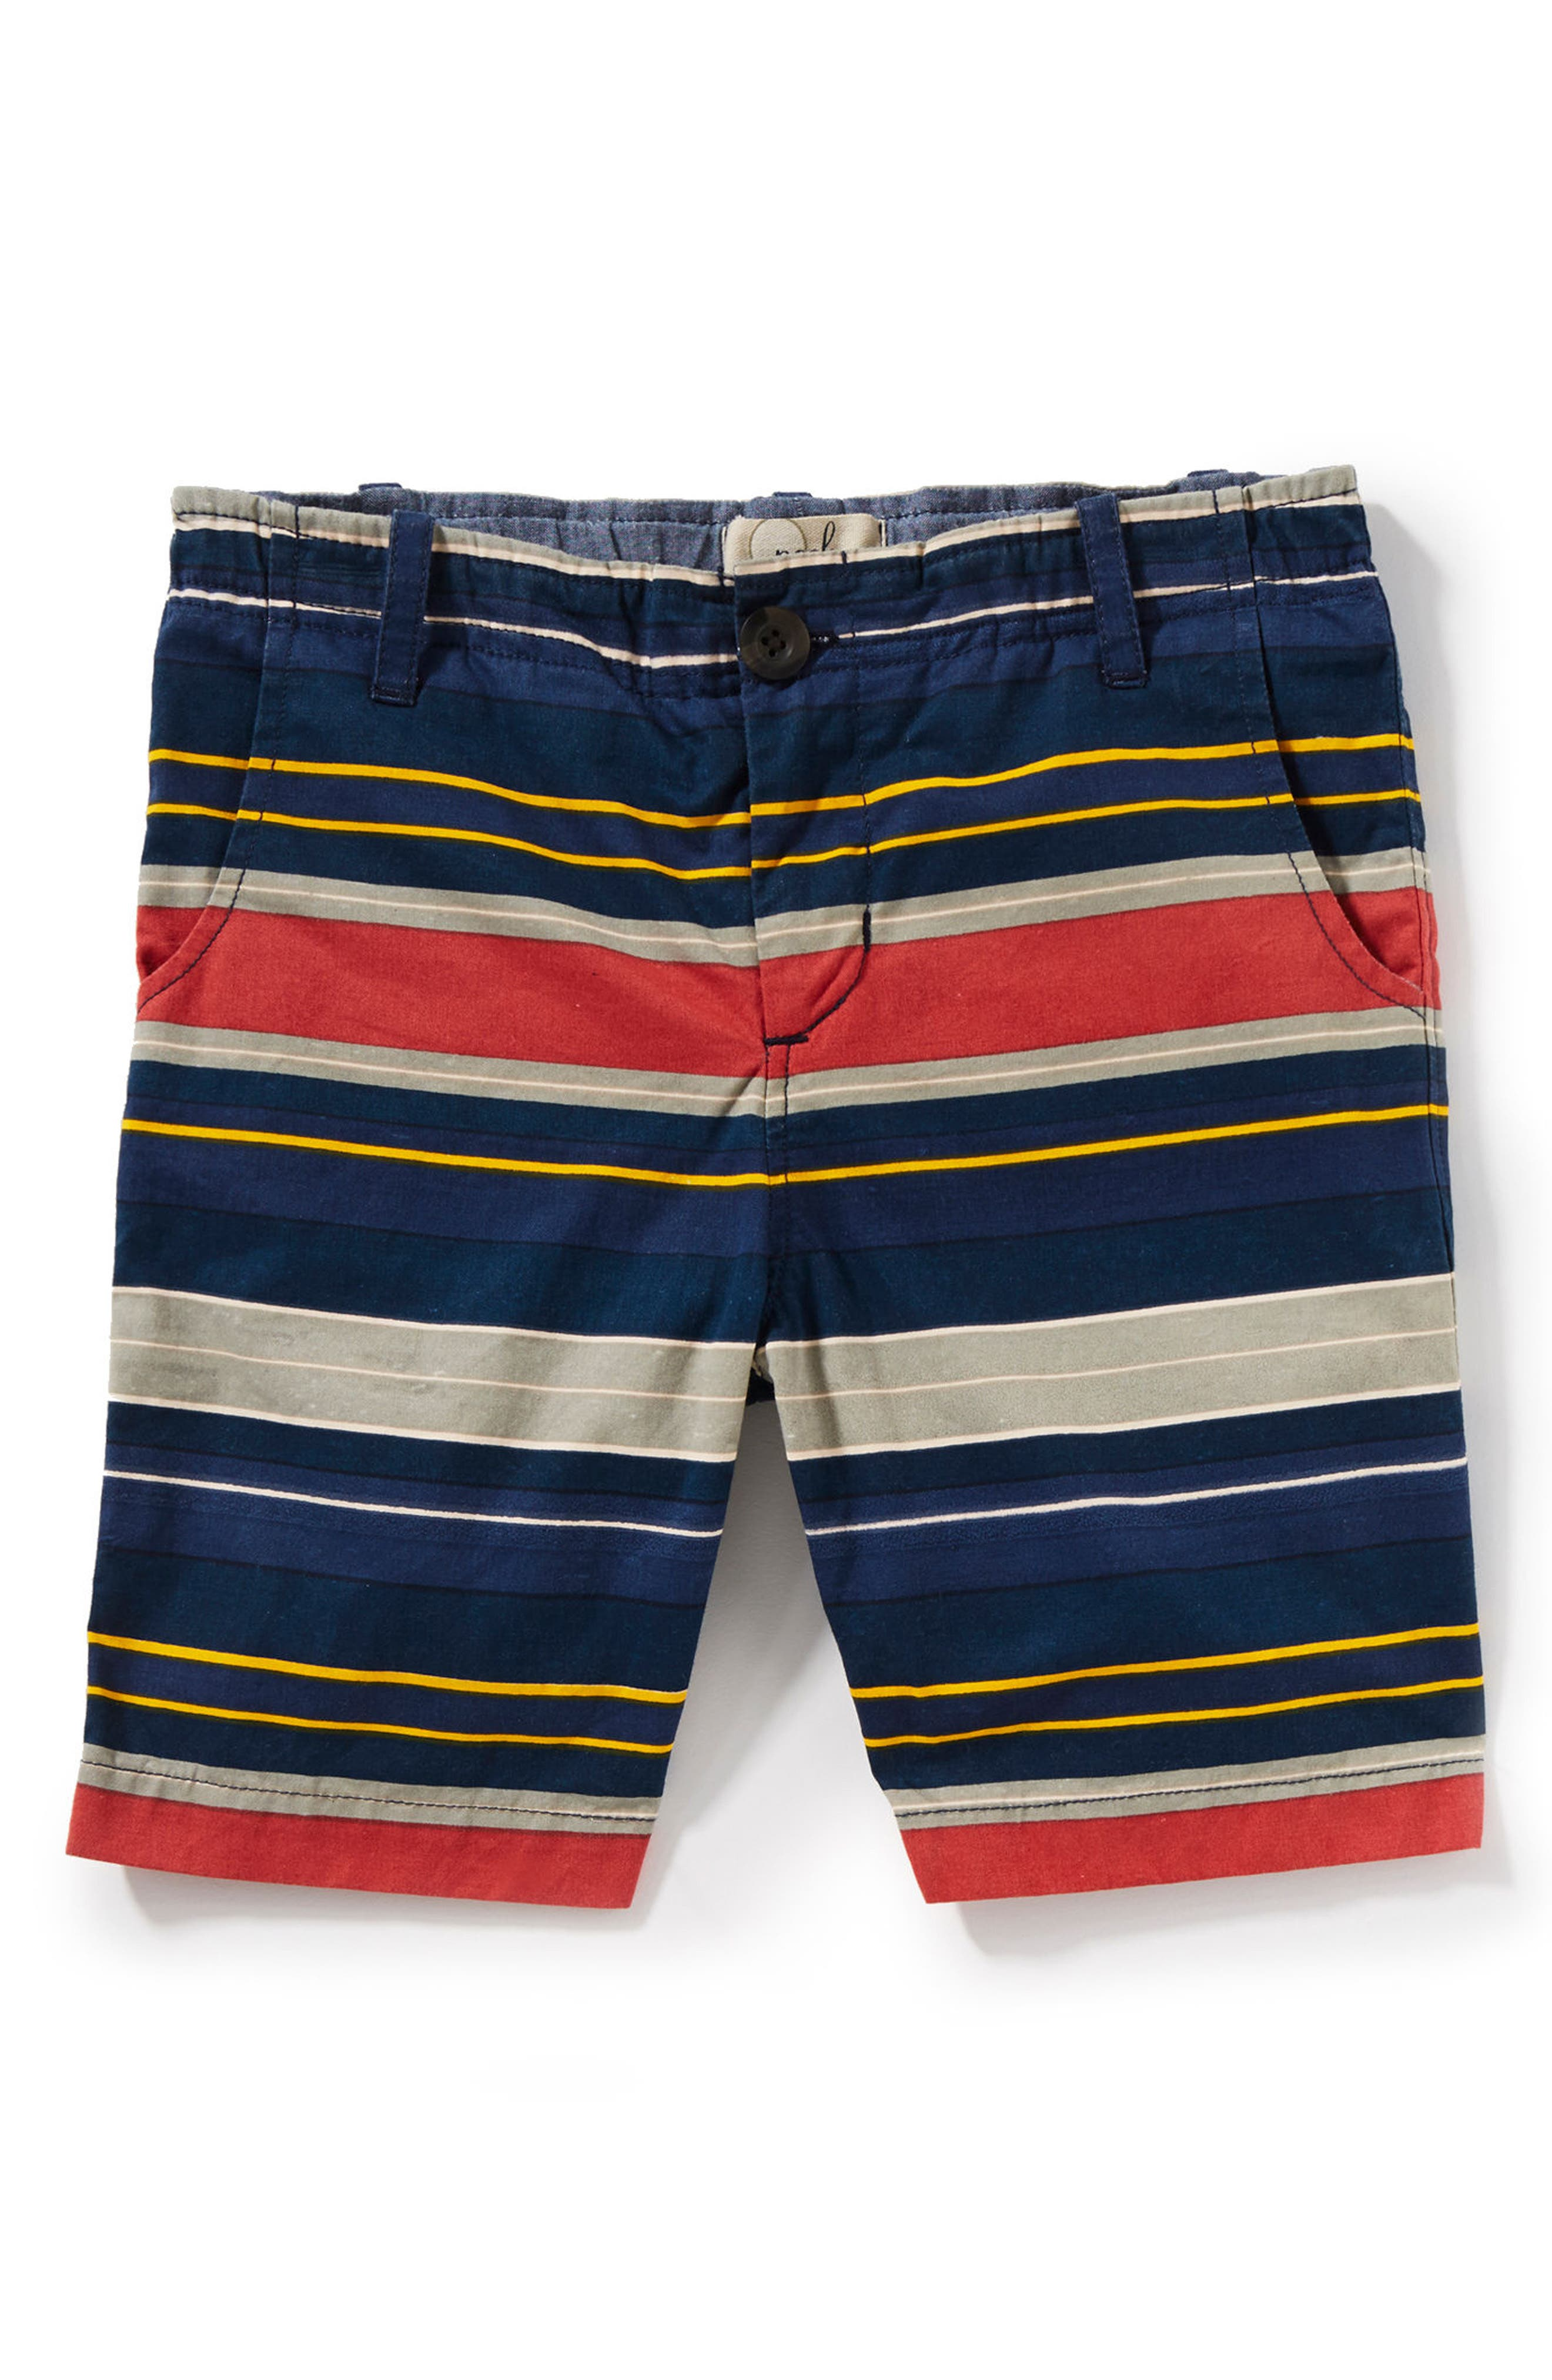 Hudson Stripe Shorts,                             Main thumbnail 1, color,                             Navy